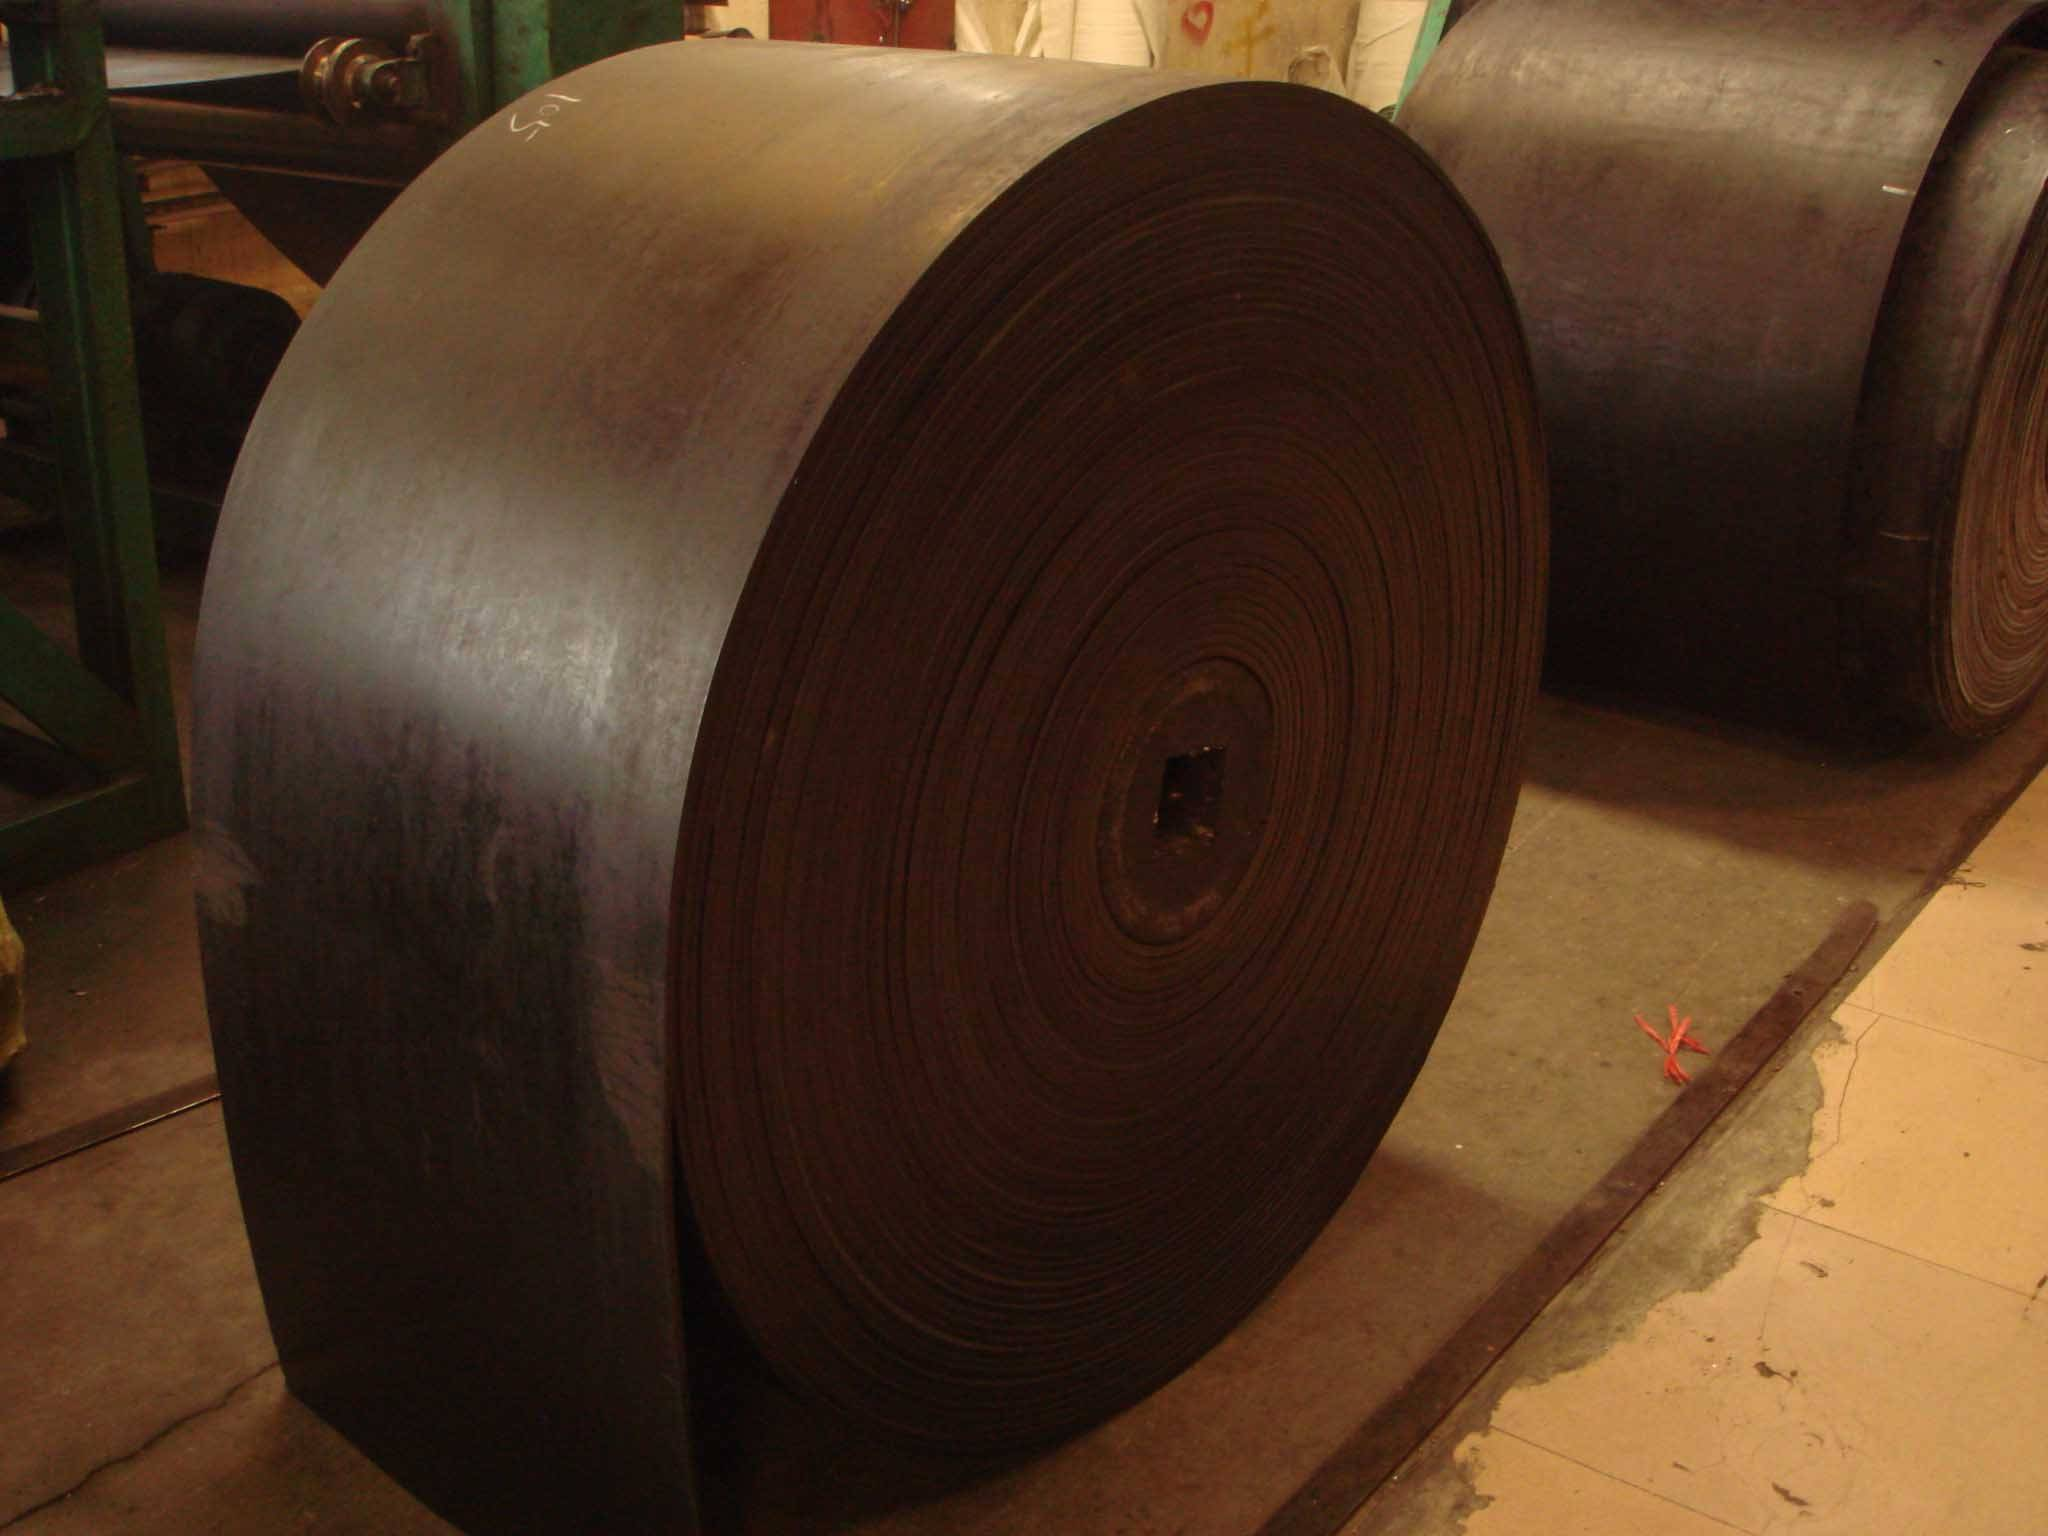 Rubber and plastic belts